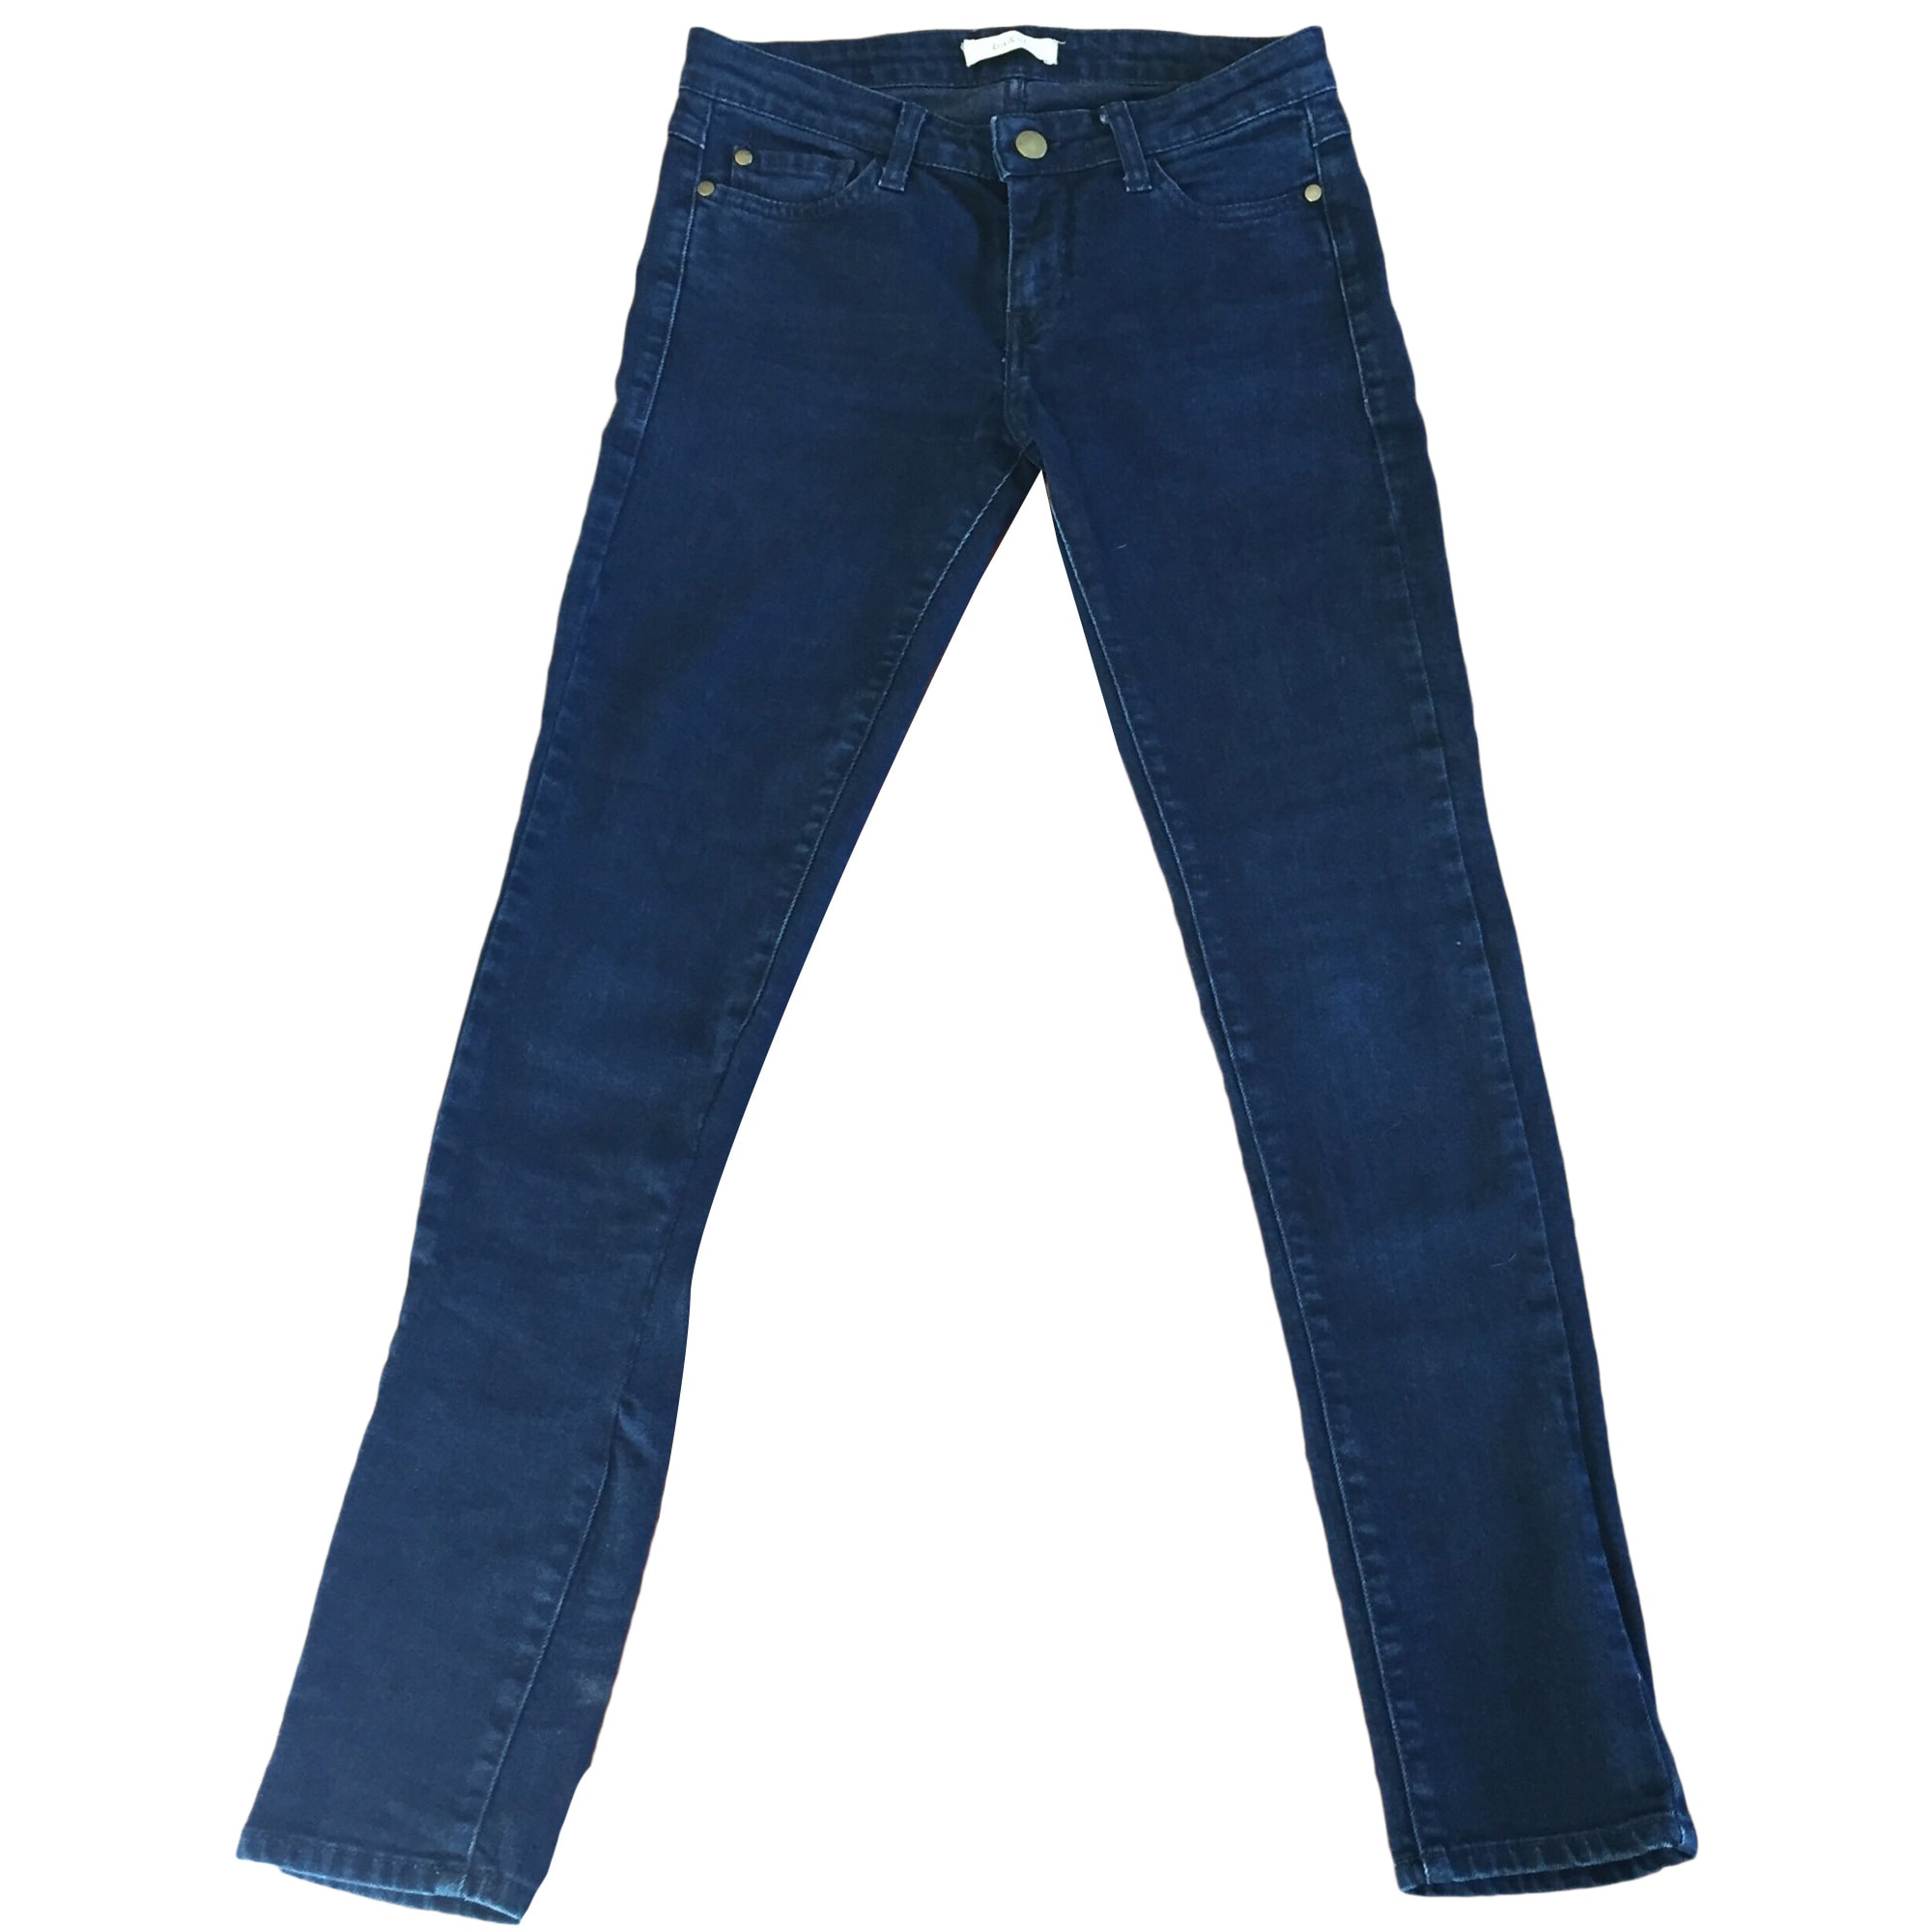 Jeans slim BA&SH Blu, blu navy, turchese